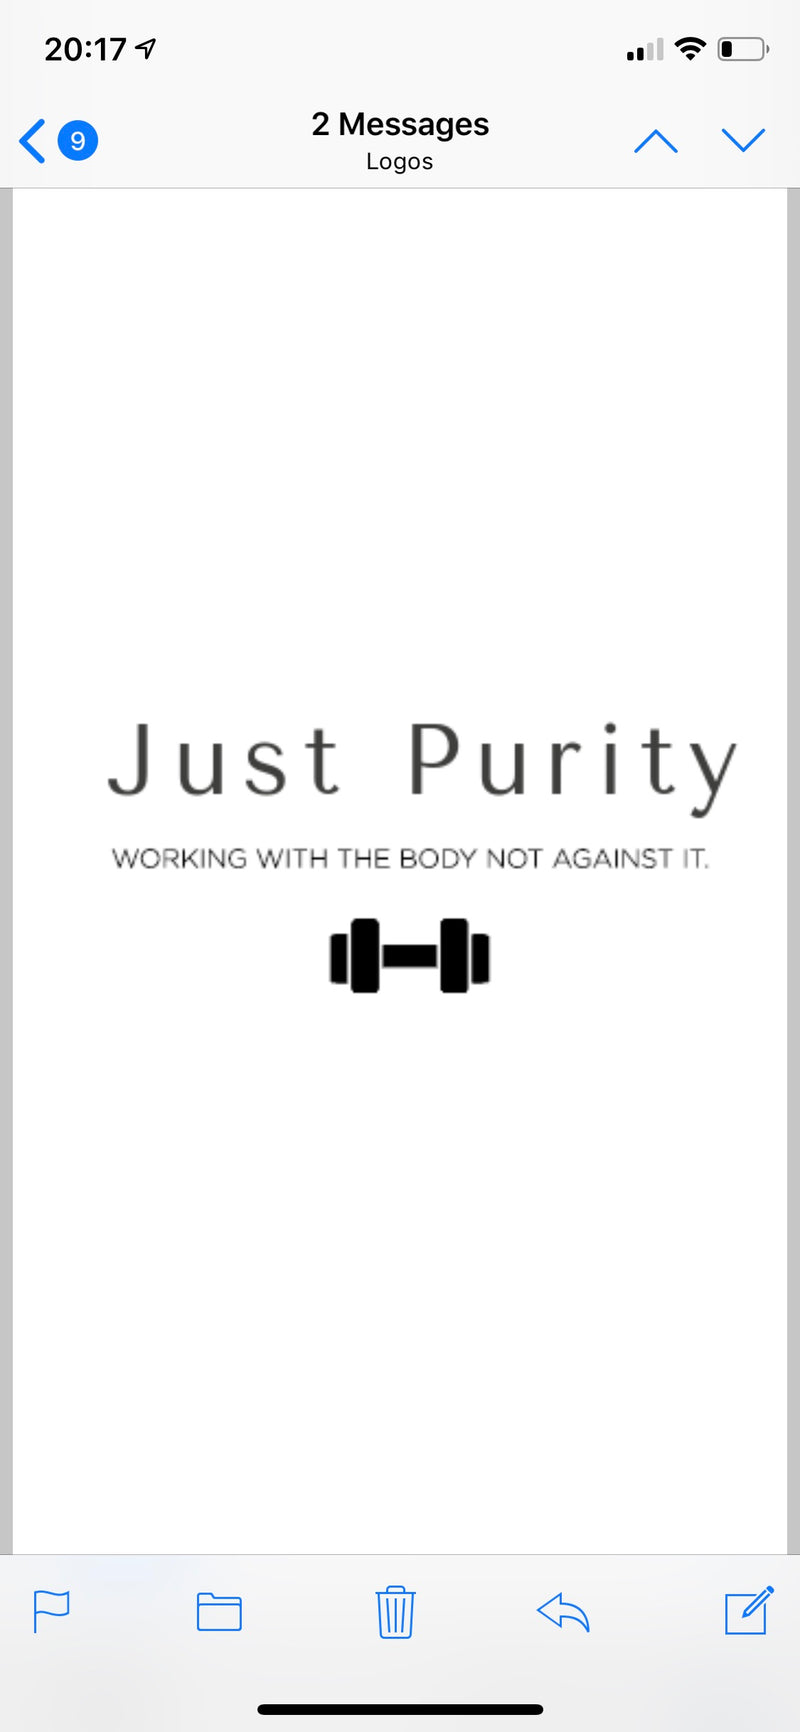 Just Purity Story